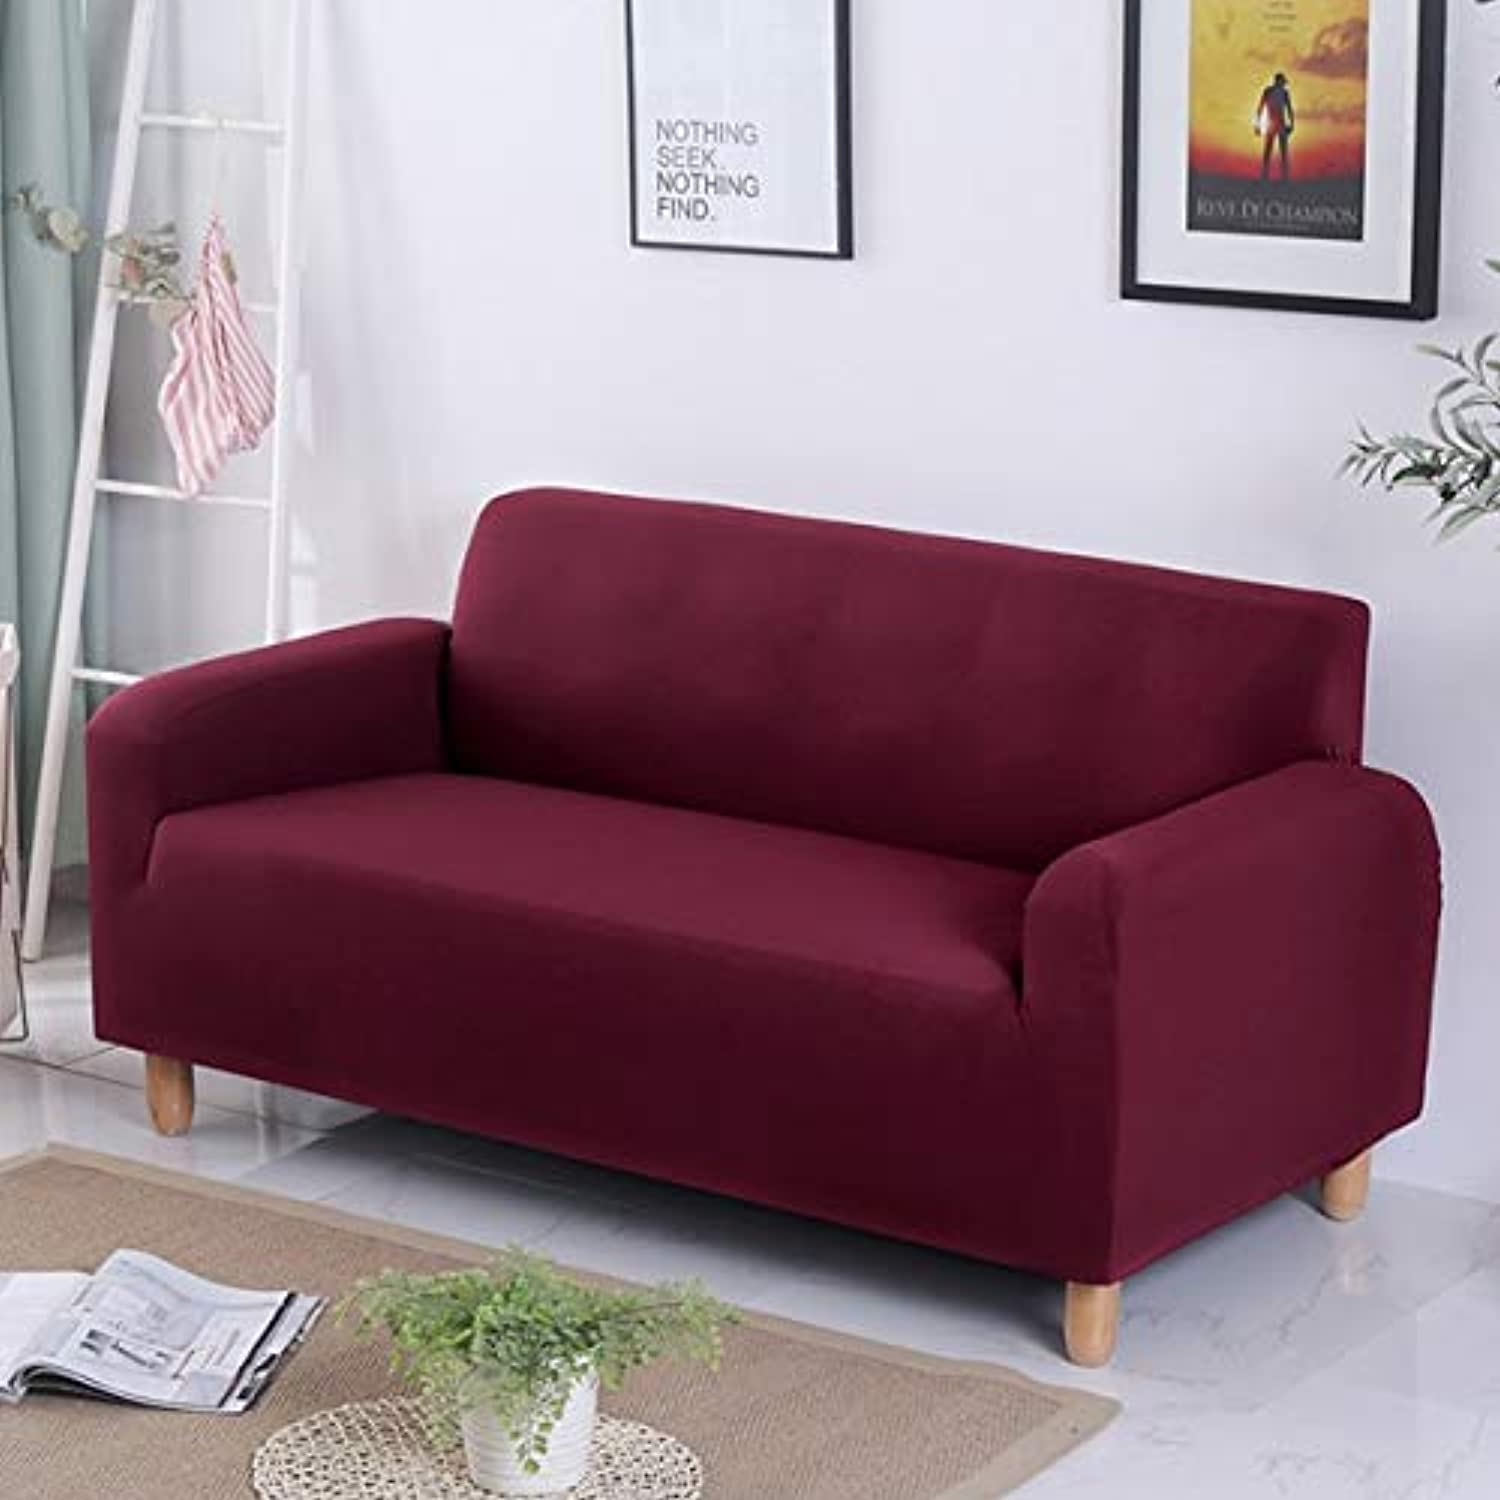 Anti-Dirty Solid color Universal Sofa Covers Couch Black Slipcover for Living Room Stretch Sofa Bed Covers Elastic Seater   Burgundy, Two Seat 145-185cm